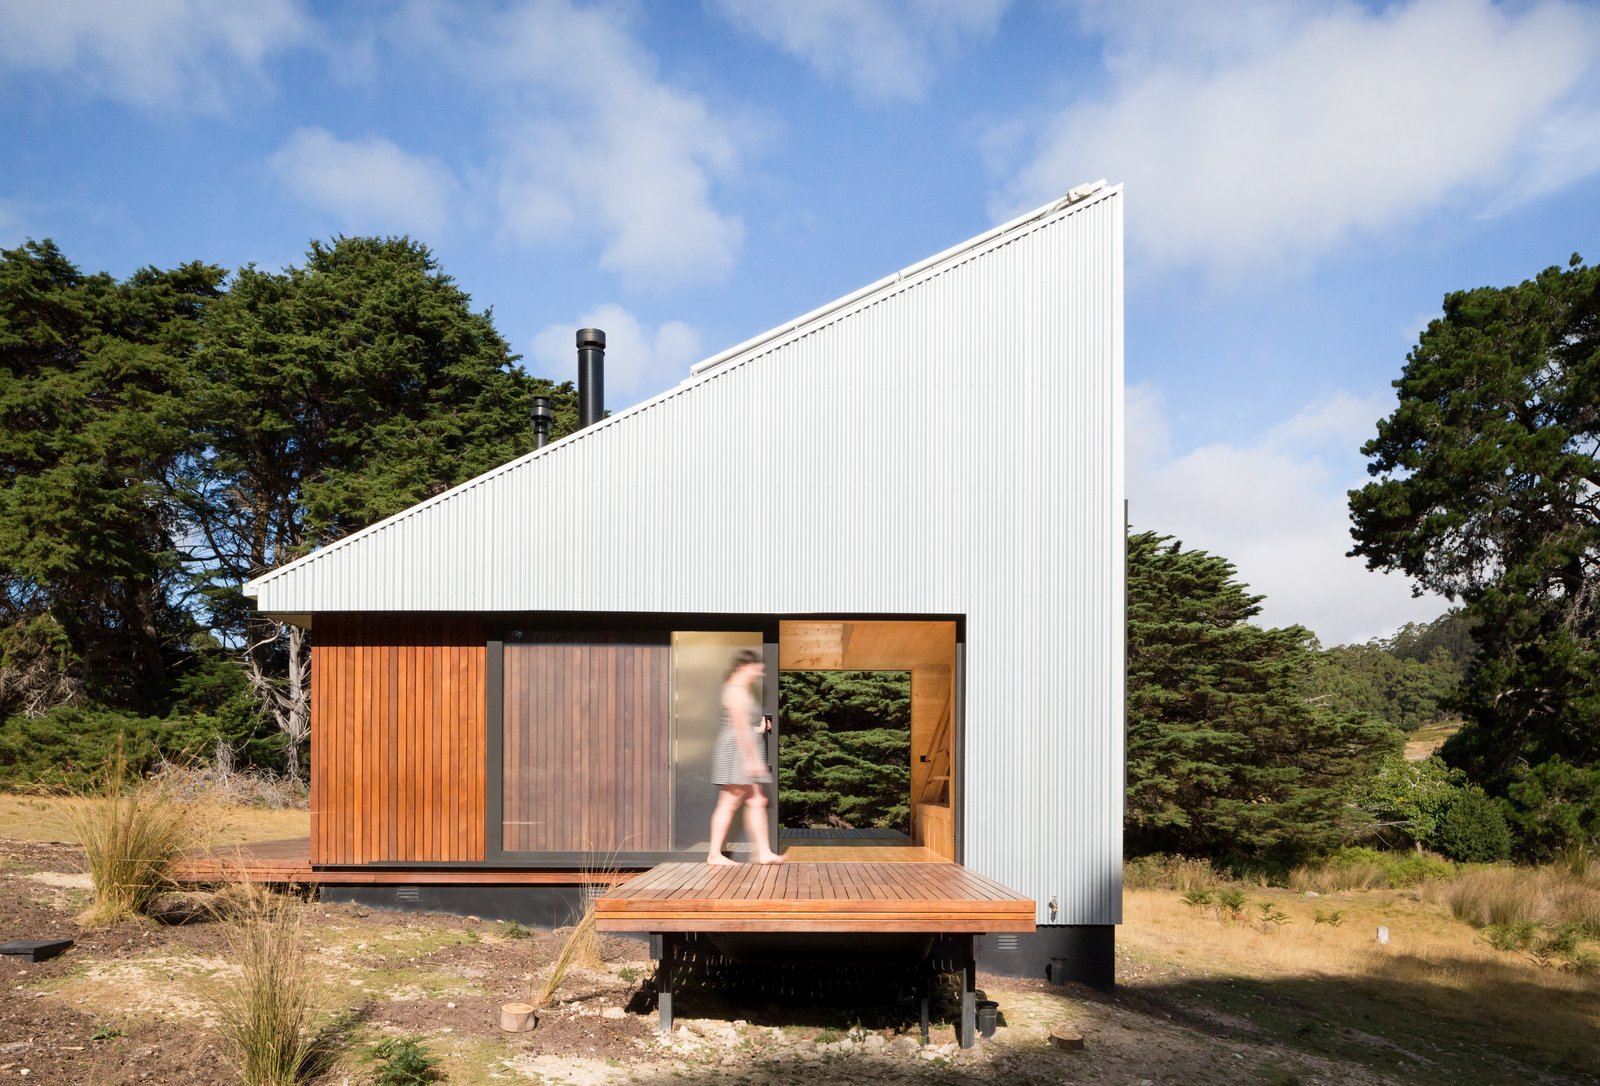 """Exterior, Wood Siding Material, Tiny Home Building Type, Cabin Building Type, Metal Siding Material, Shed RoofLine, and Metal Roof Material """"With both sliding doors open, the two decks connect seamlessly through the building, dramatically changing the sense of scale, space, and connection to the site.""""  Photos from A Secluded, Off-Grid Cabin Echoes Stunning Minimalist Design"""